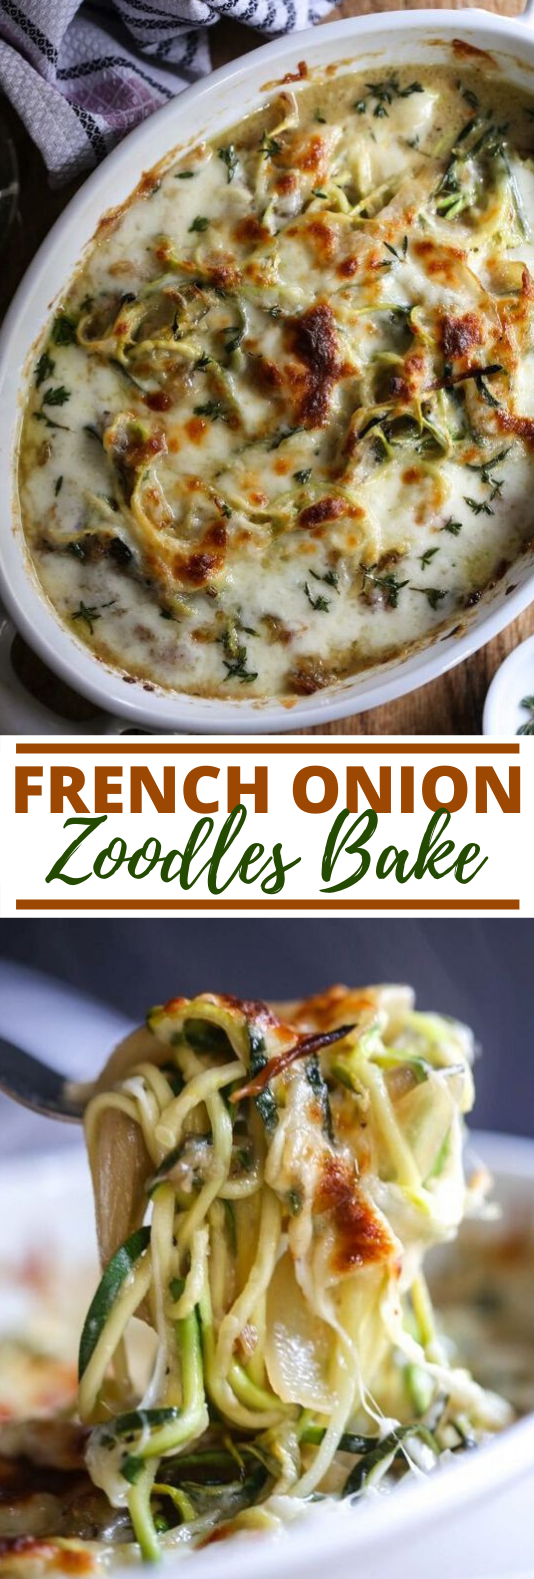 French Onion Zoodle Bake #vegetarian #recipe #dinner #healthy #plantbased